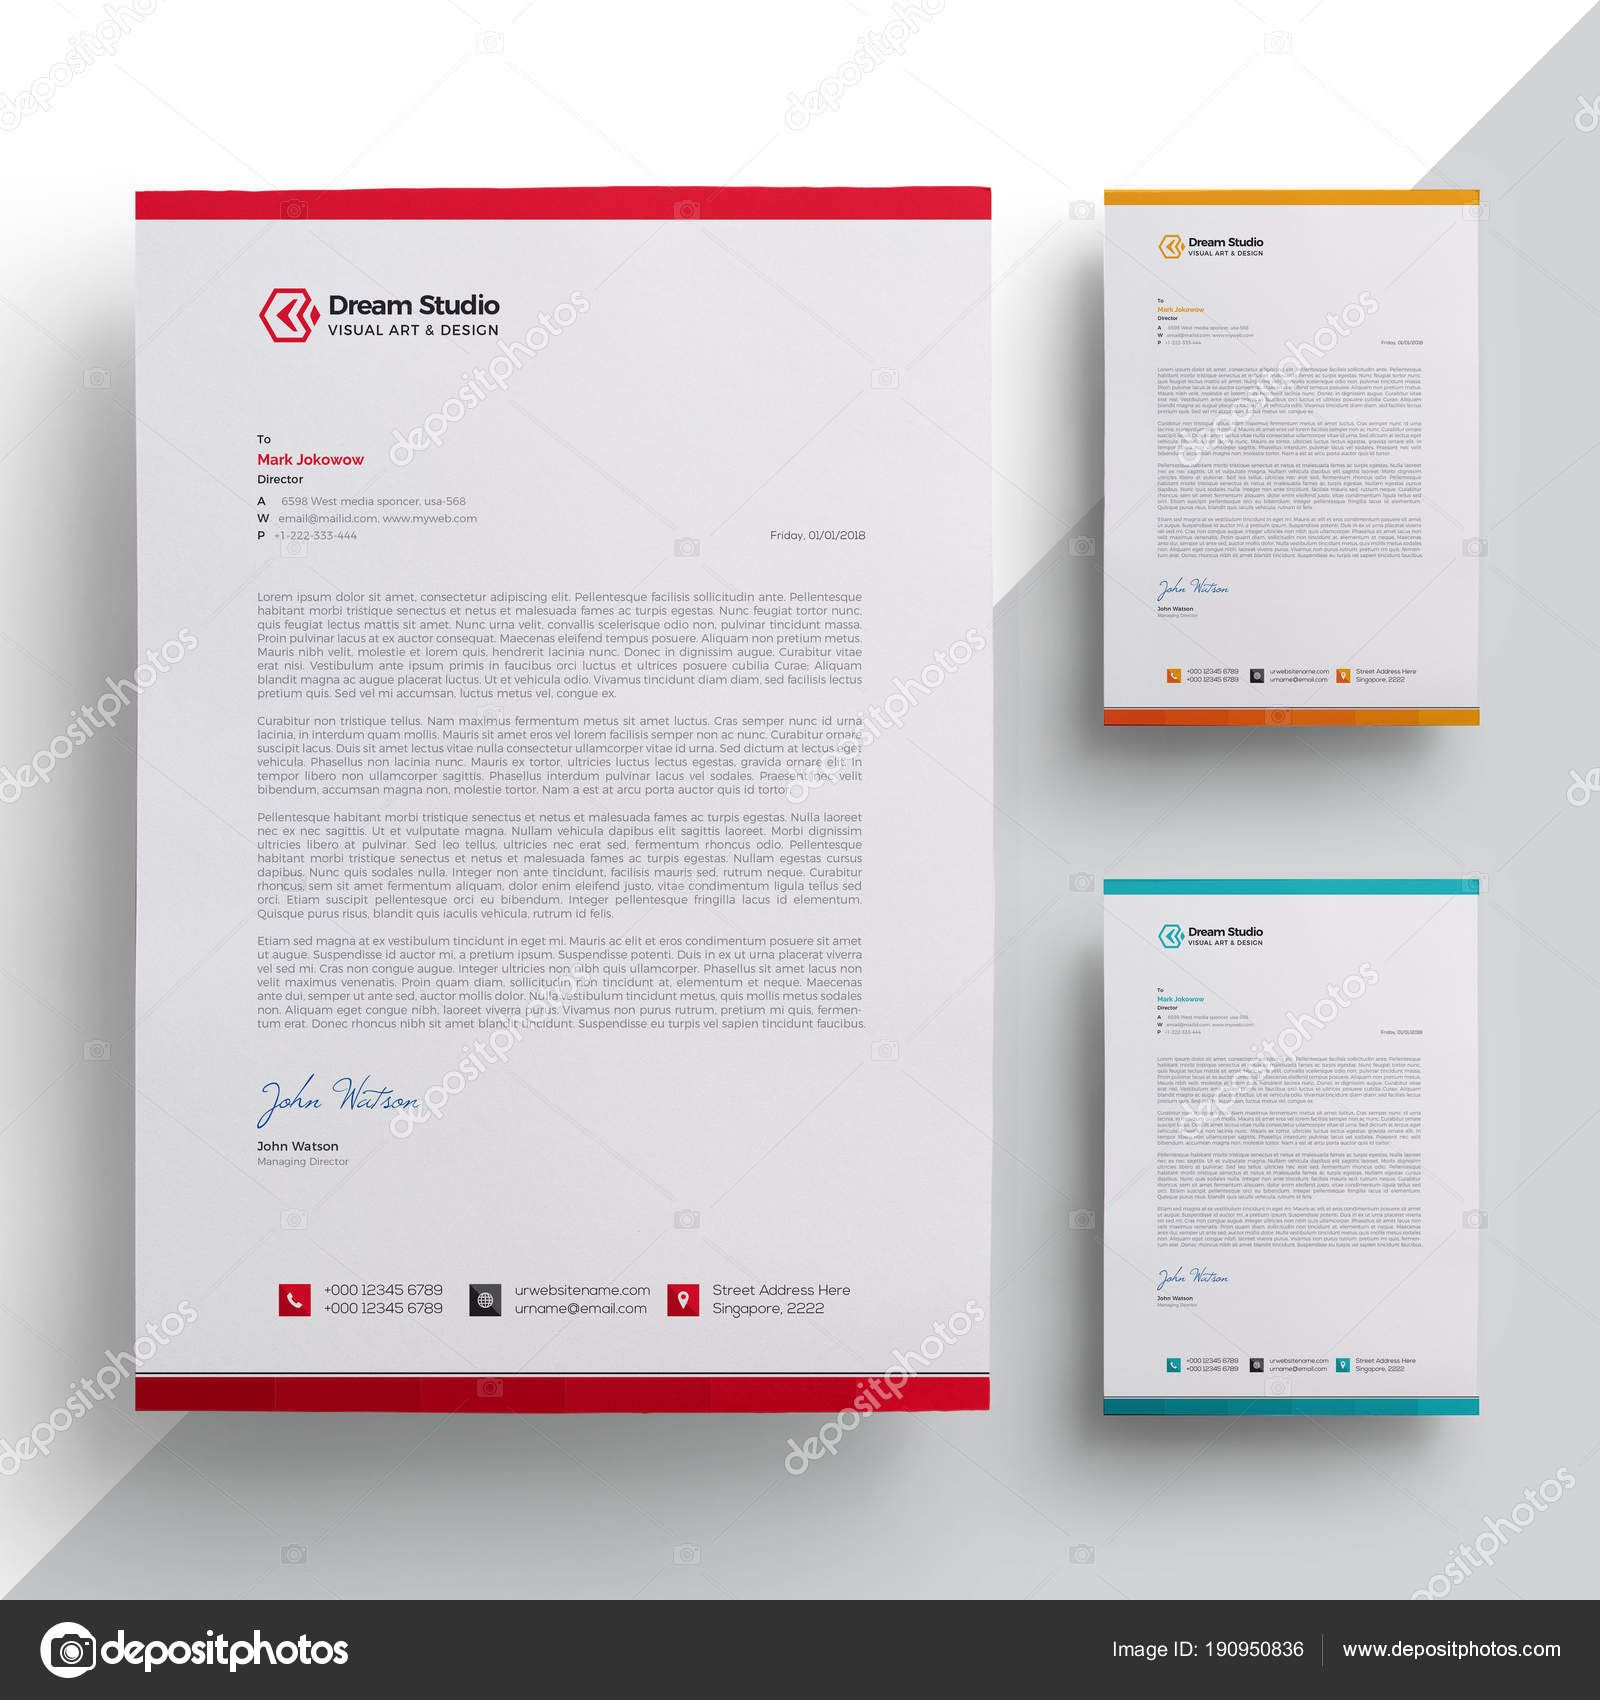 download modern company letterhead template — stock low experience resume examples warehouse supervisor doc entry level objective